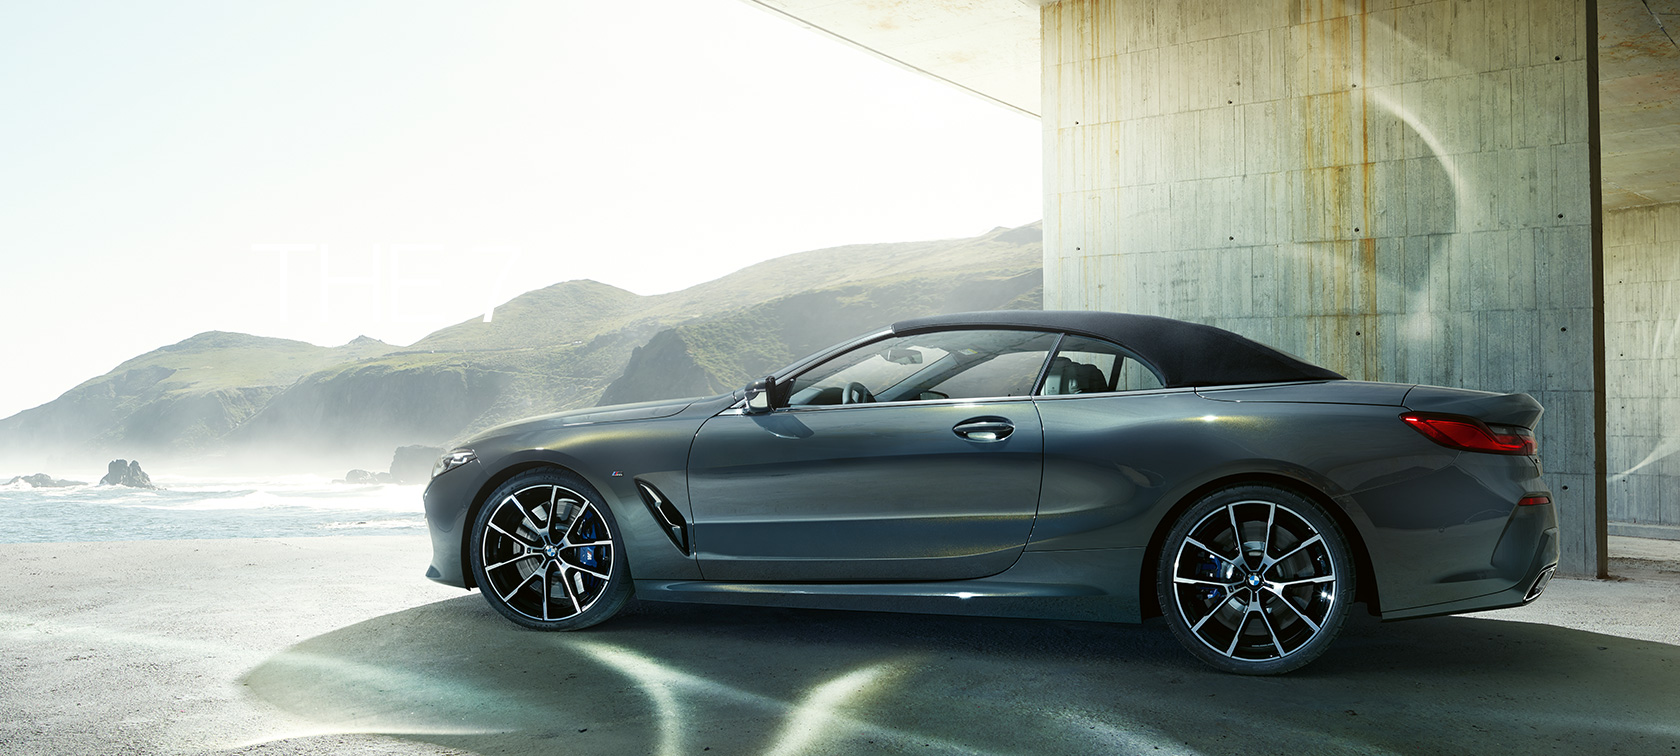 BMW 8 Series Convertible, technical data